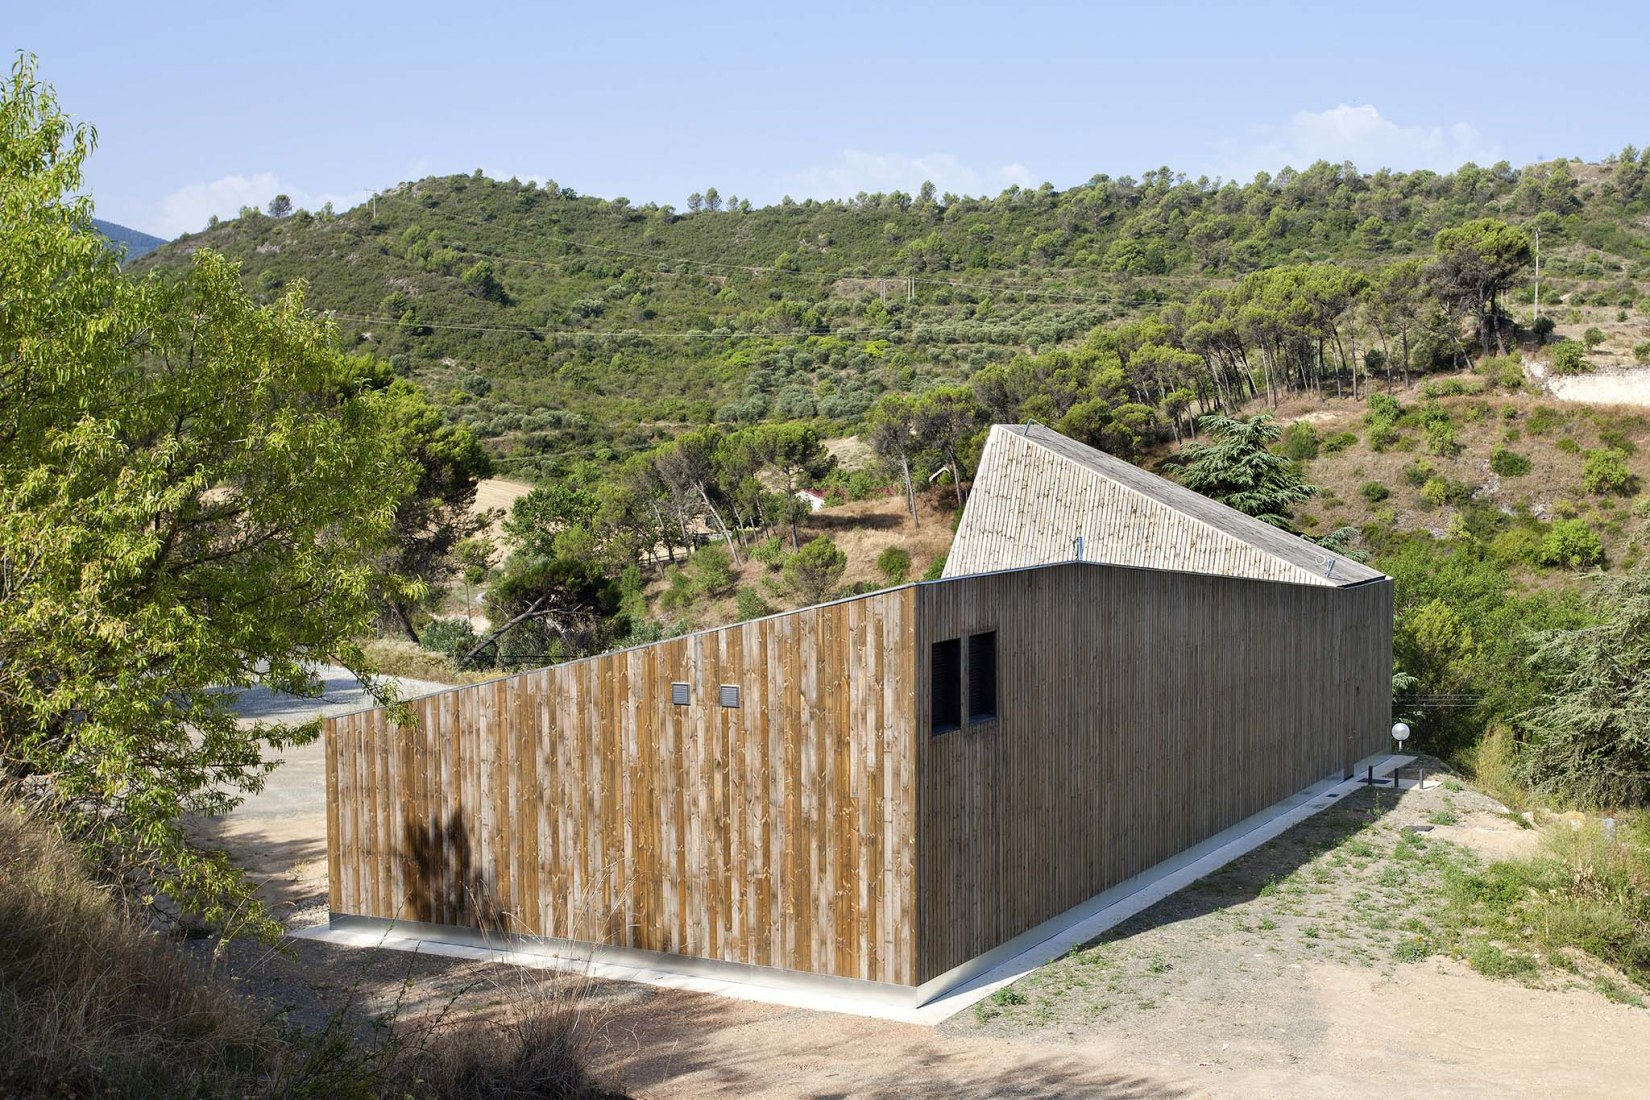 Environmental Guardhouse in Estella by Boa Arquitectos. Photograph by Berta Buzunariz